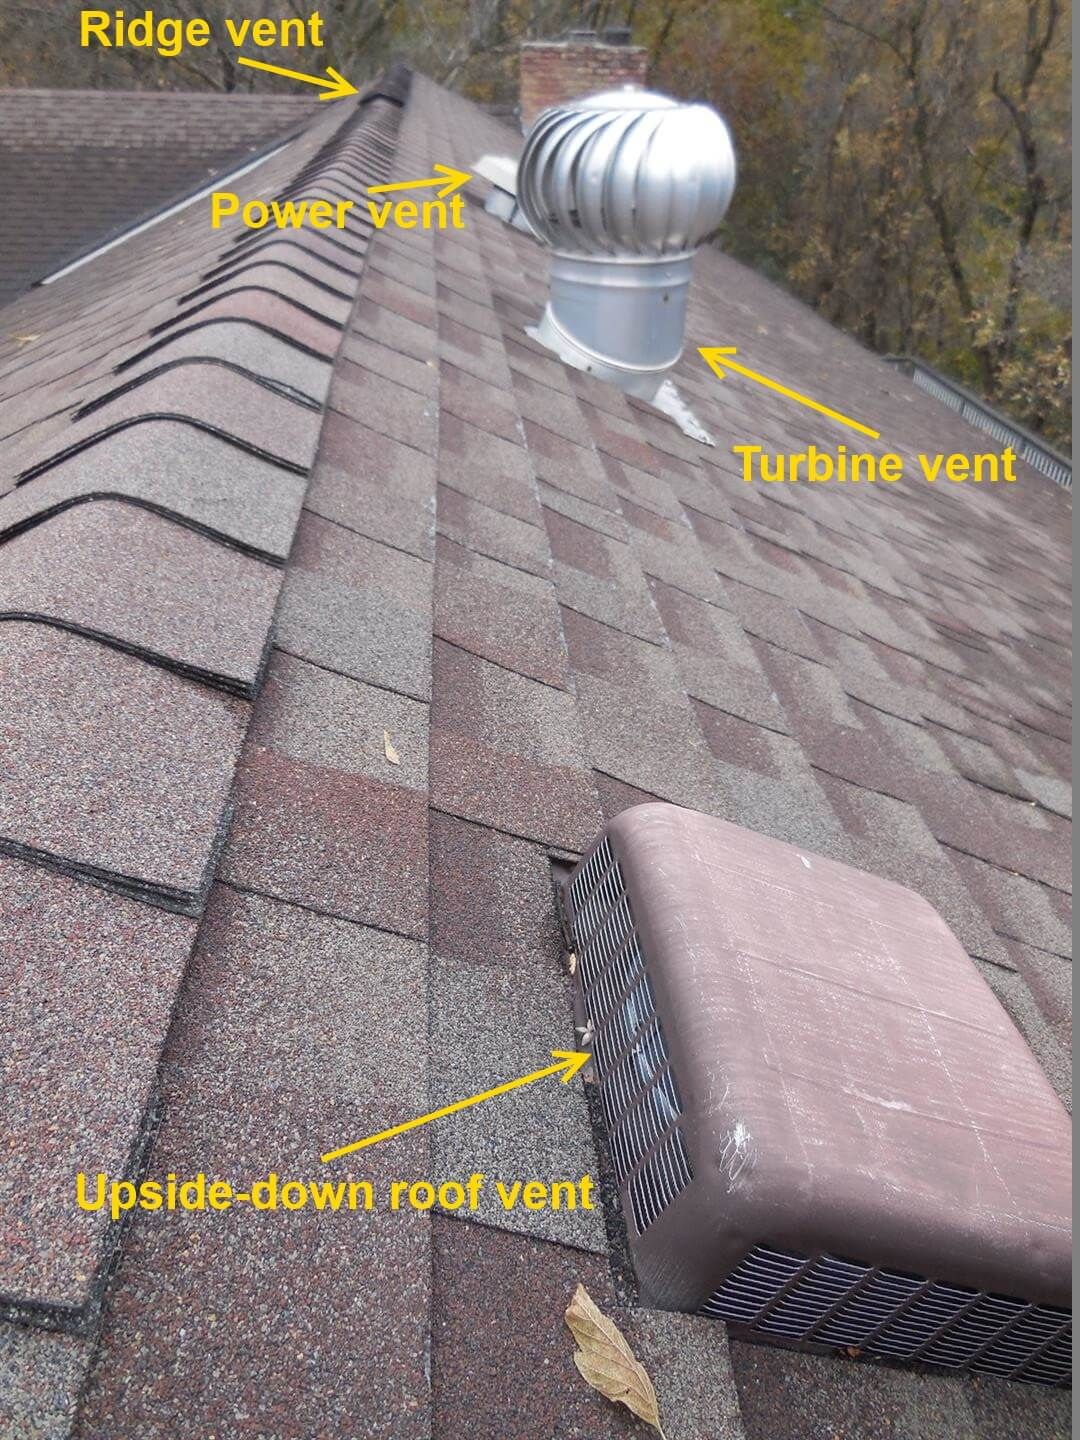 Roof Vents Problems And Solutions Roof Vents Types Of Roof Vents Ridge Vent